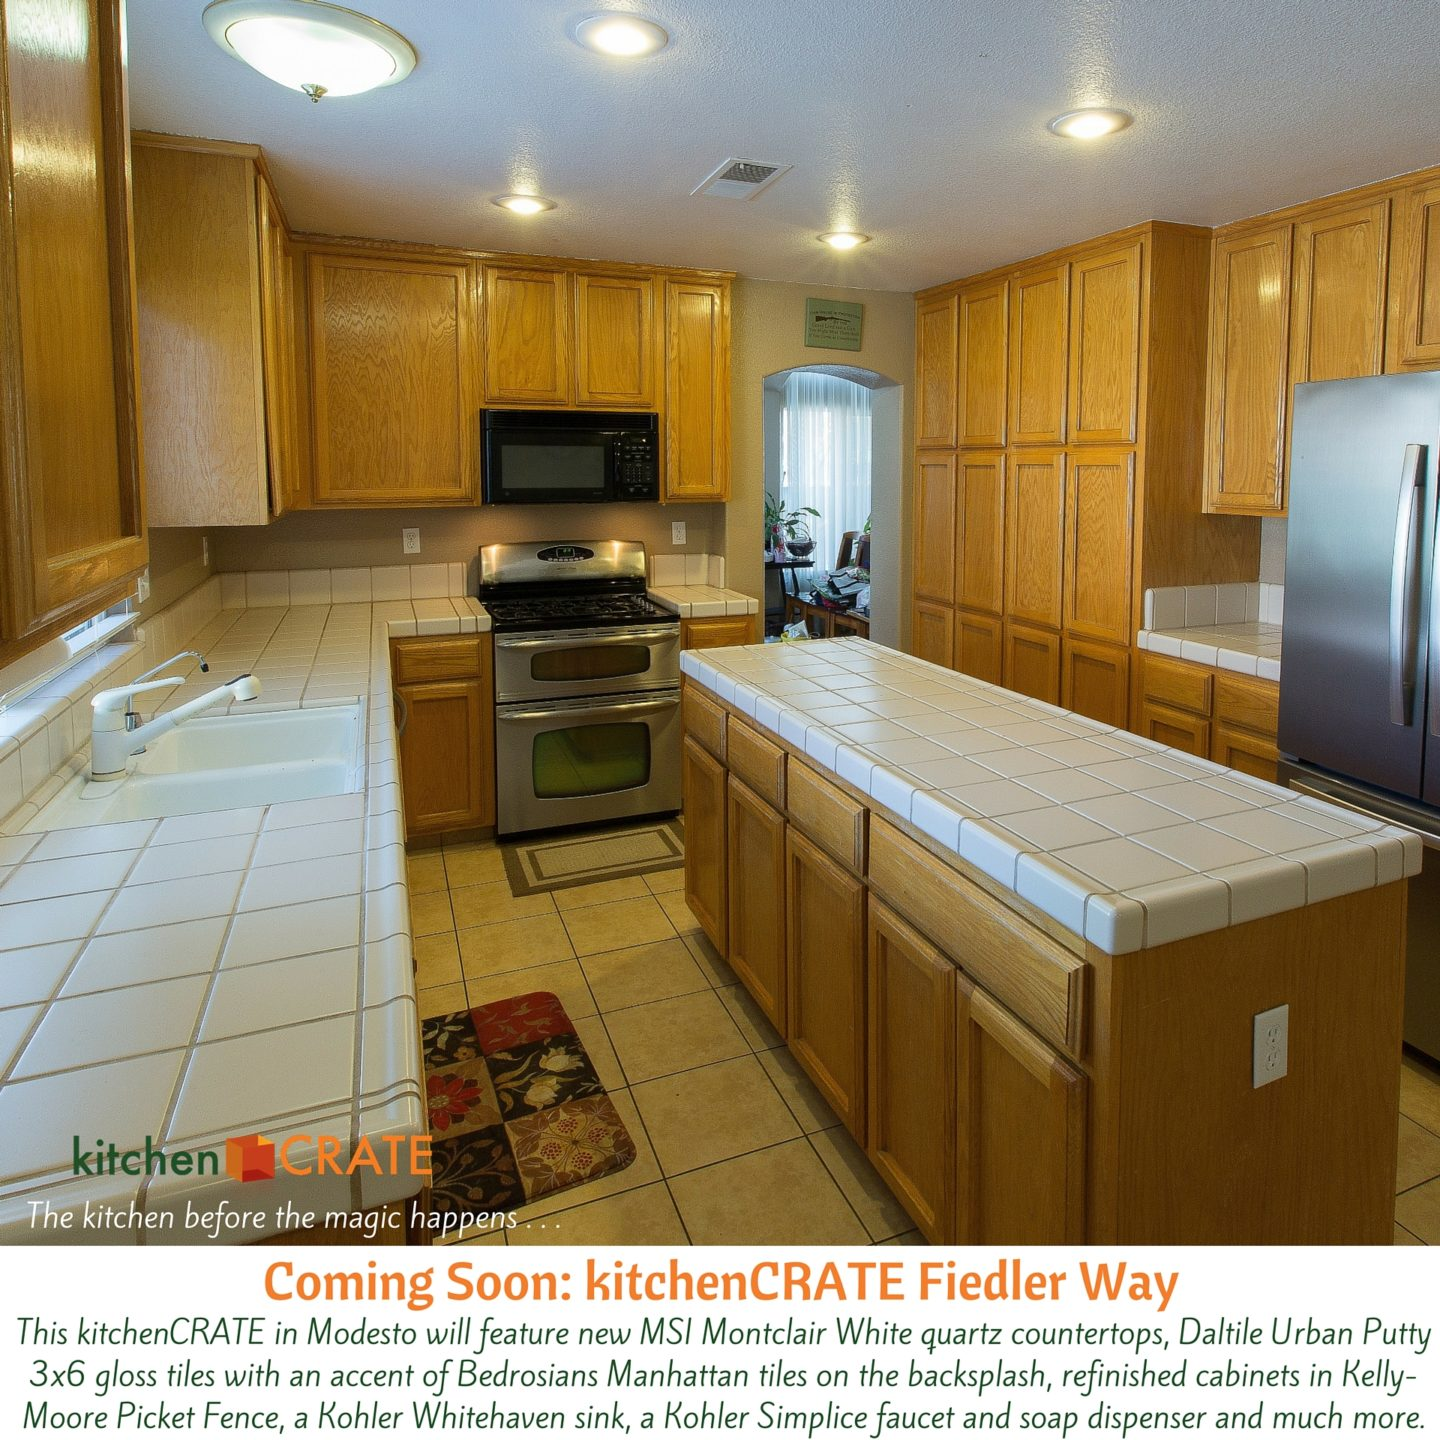 KitchenCRATE Fiedler Way Begins in Modesto CA